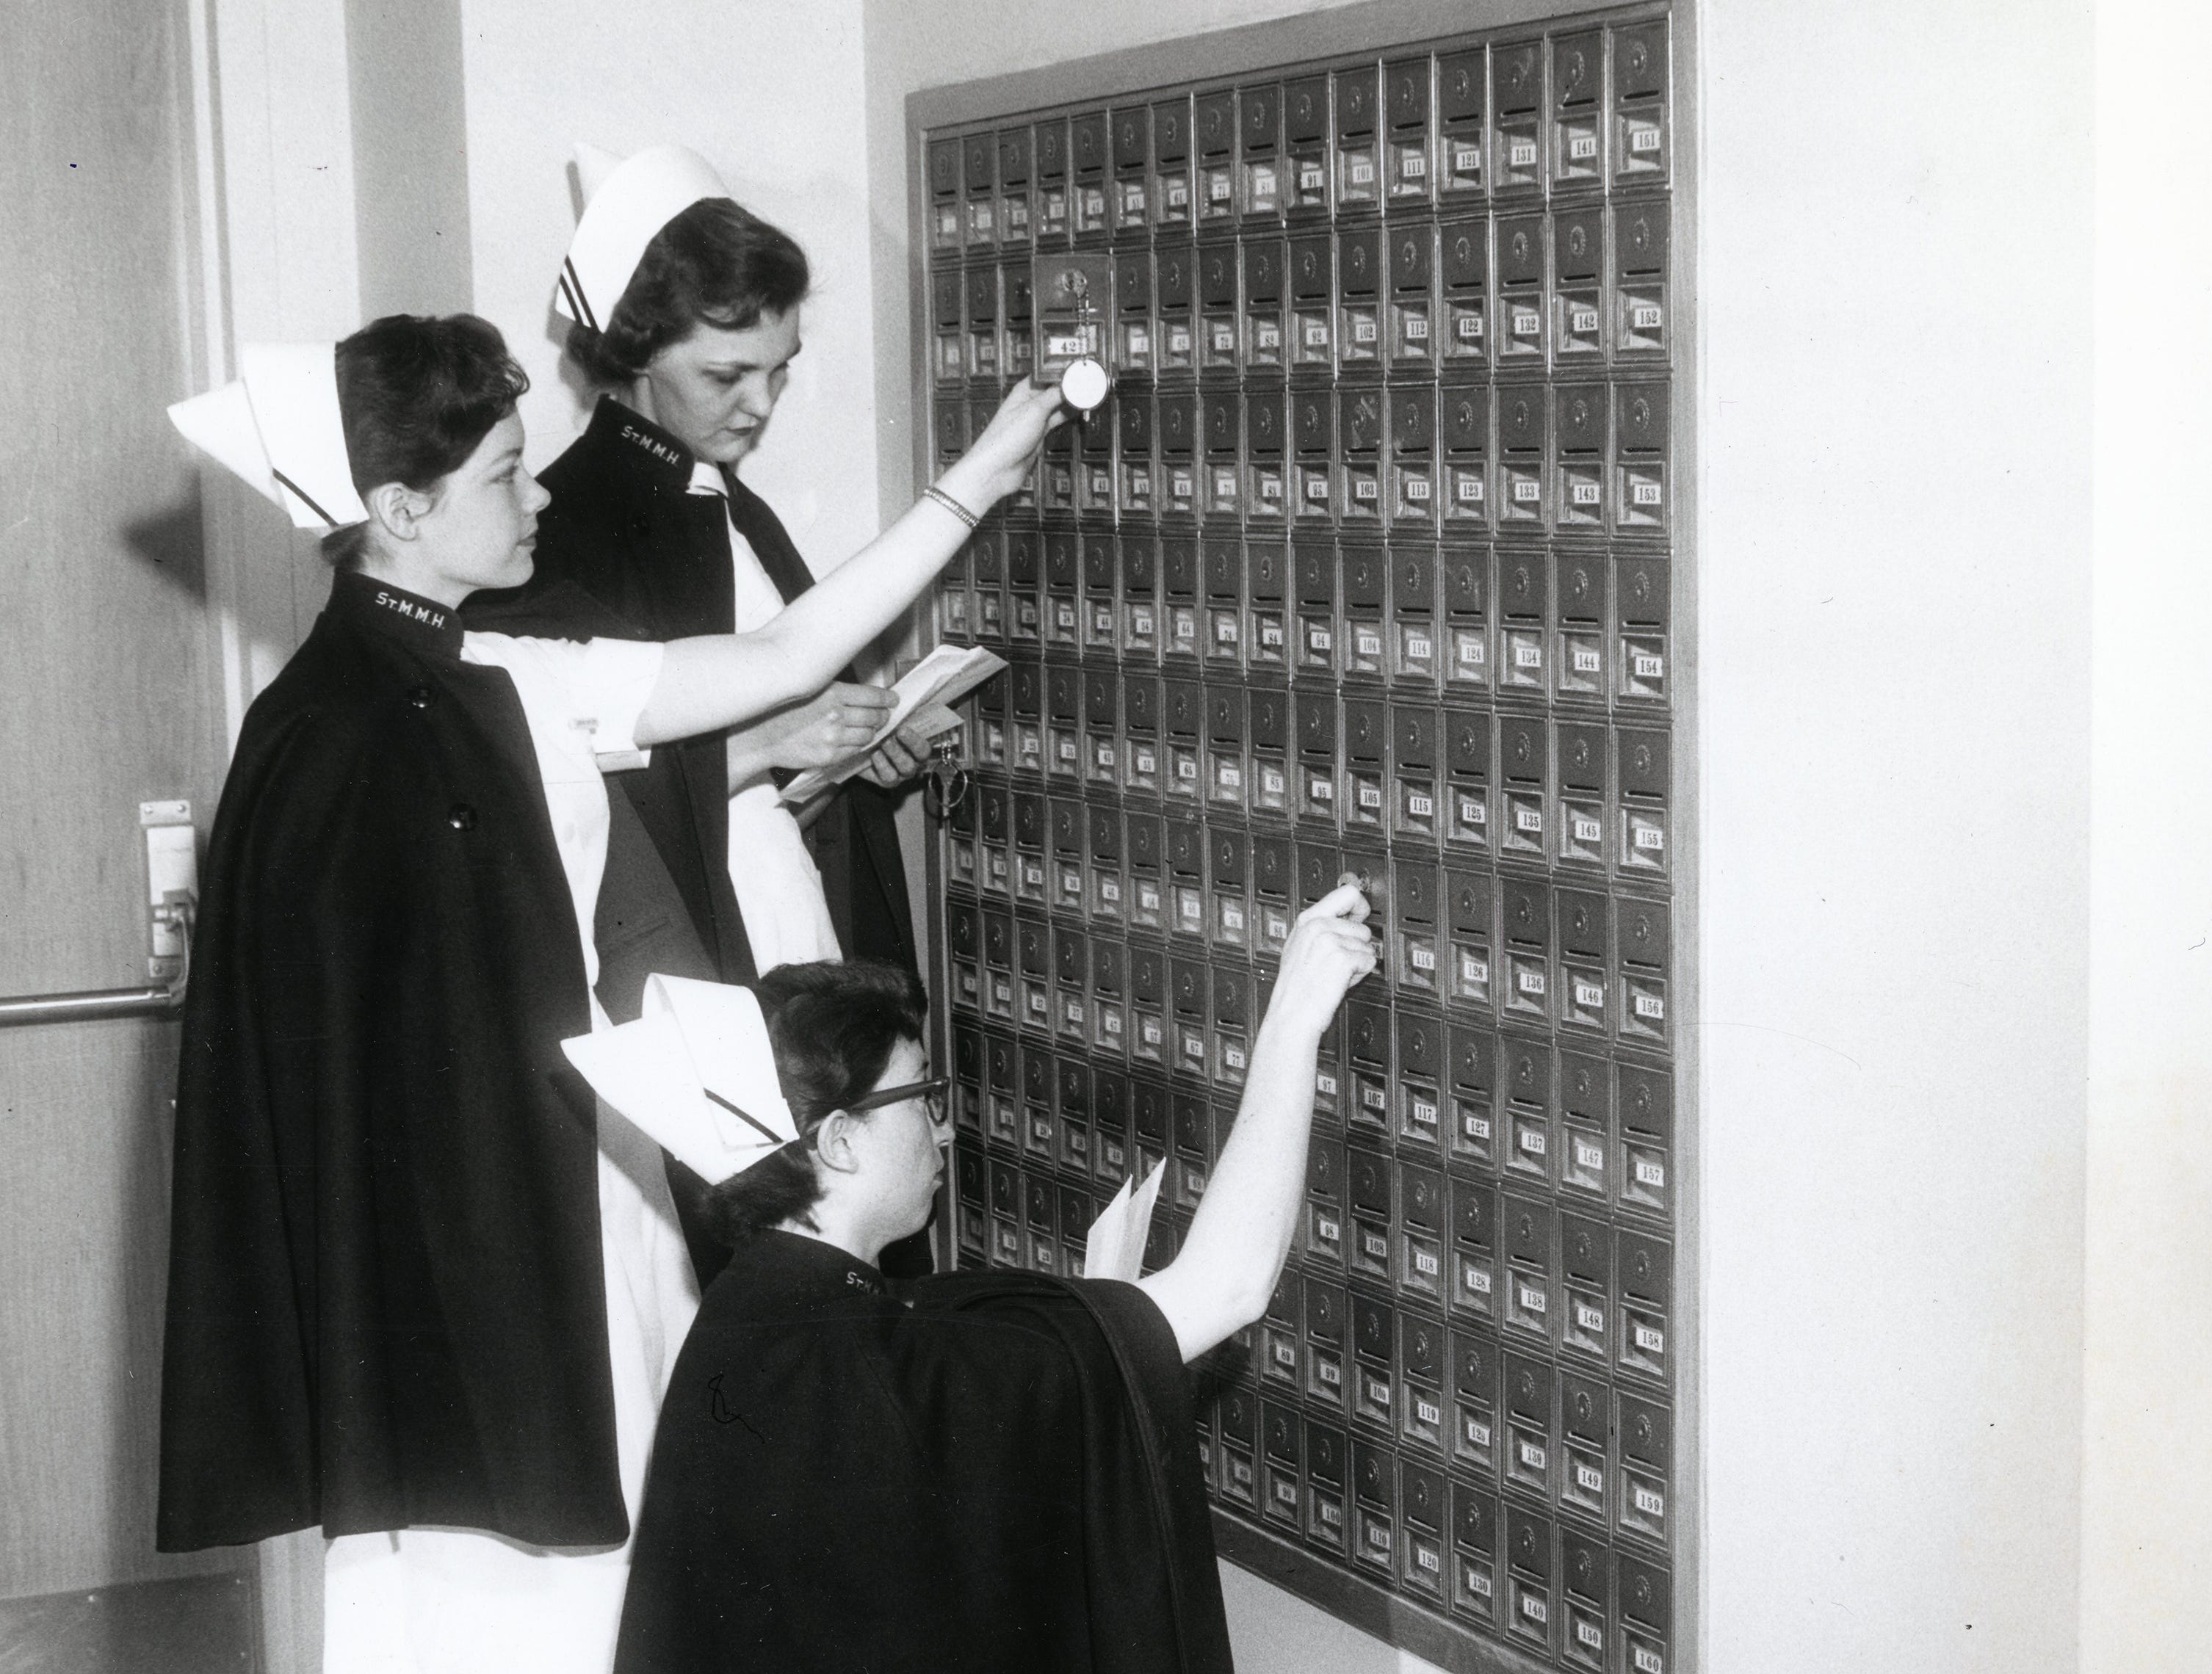 St. Mary's nurses in April 1958.